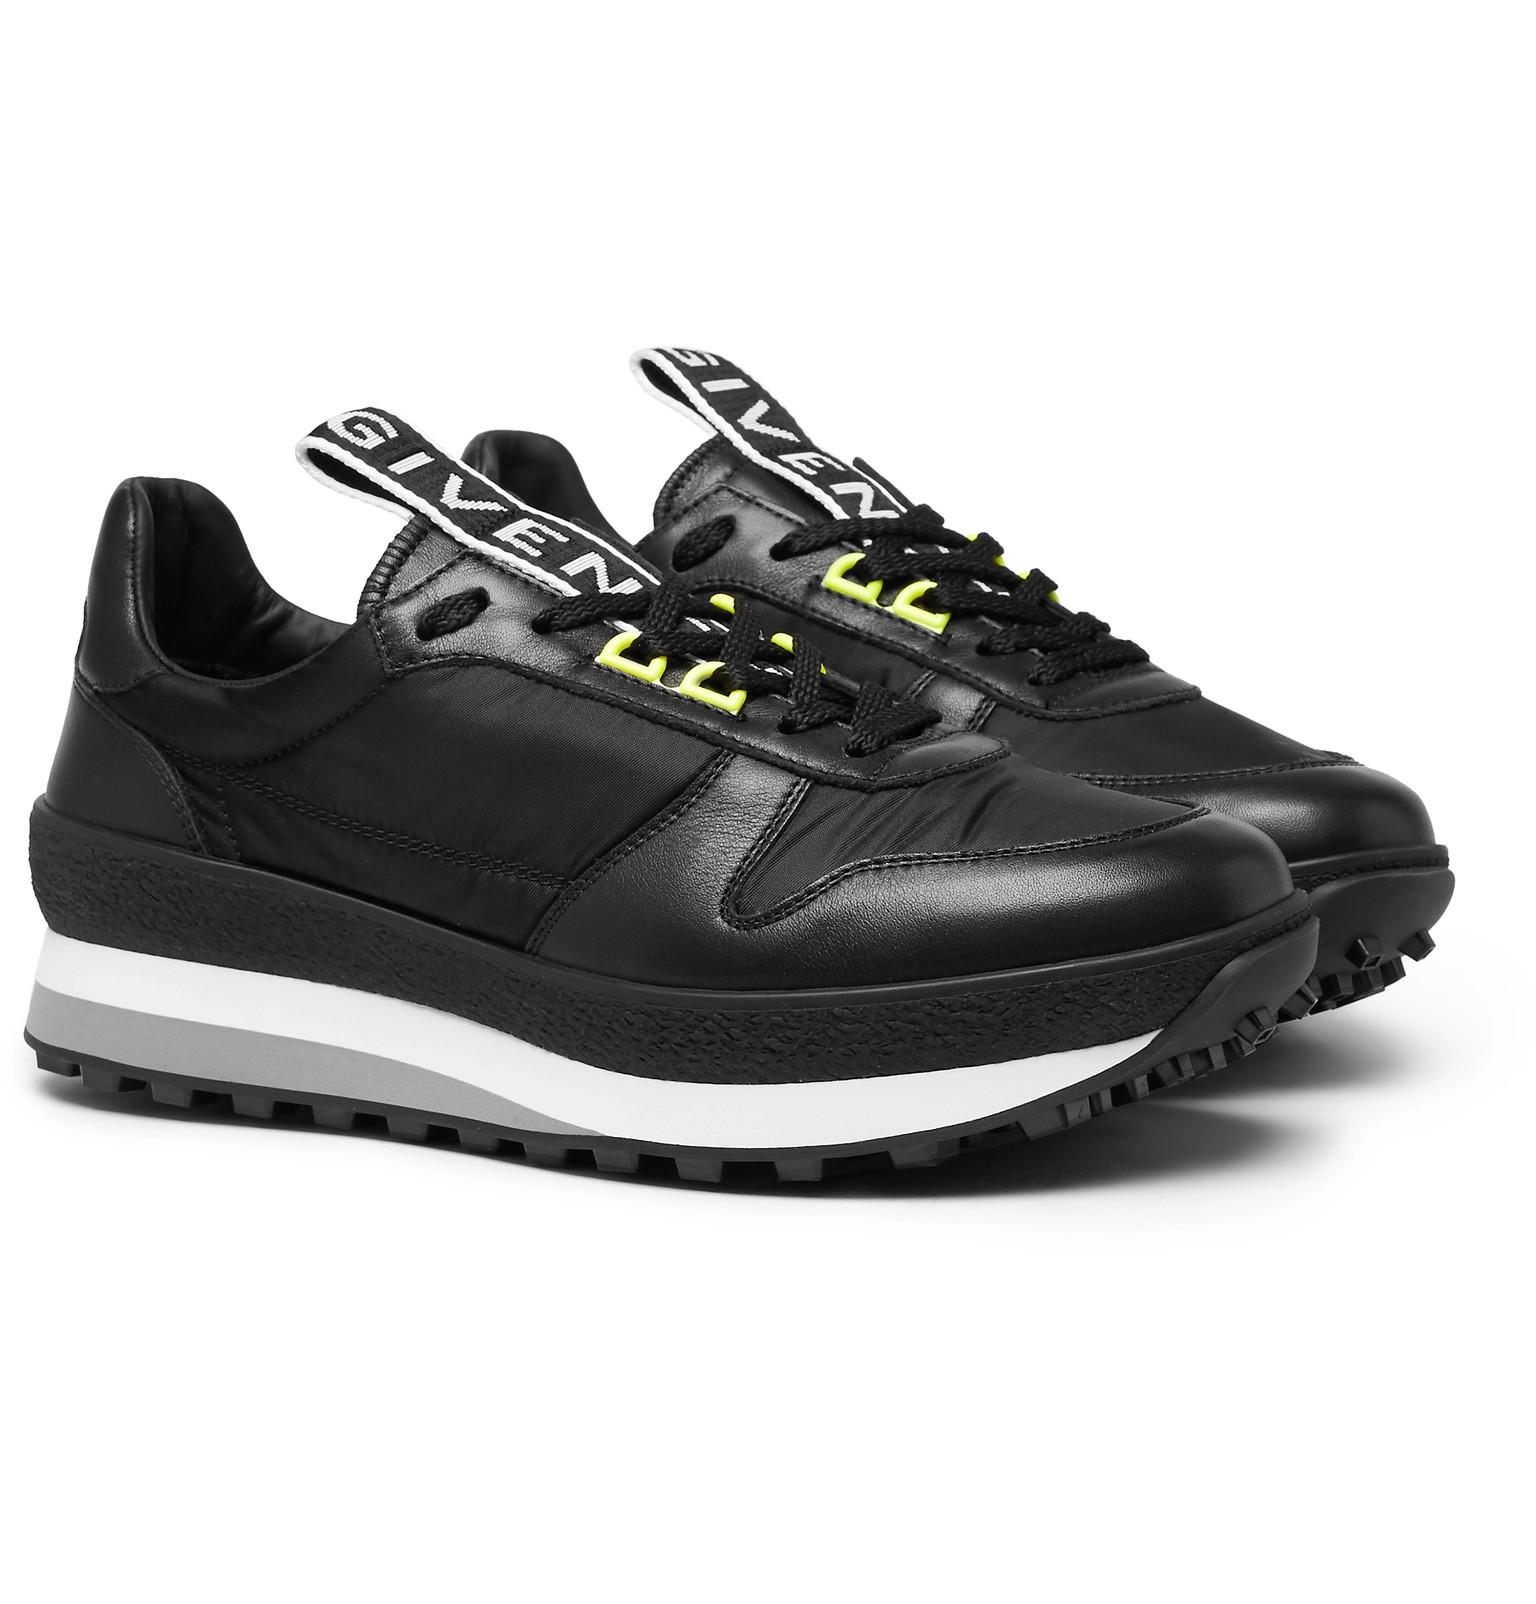 Givenchy Tr3 Leather And Shell Sneakers - Black